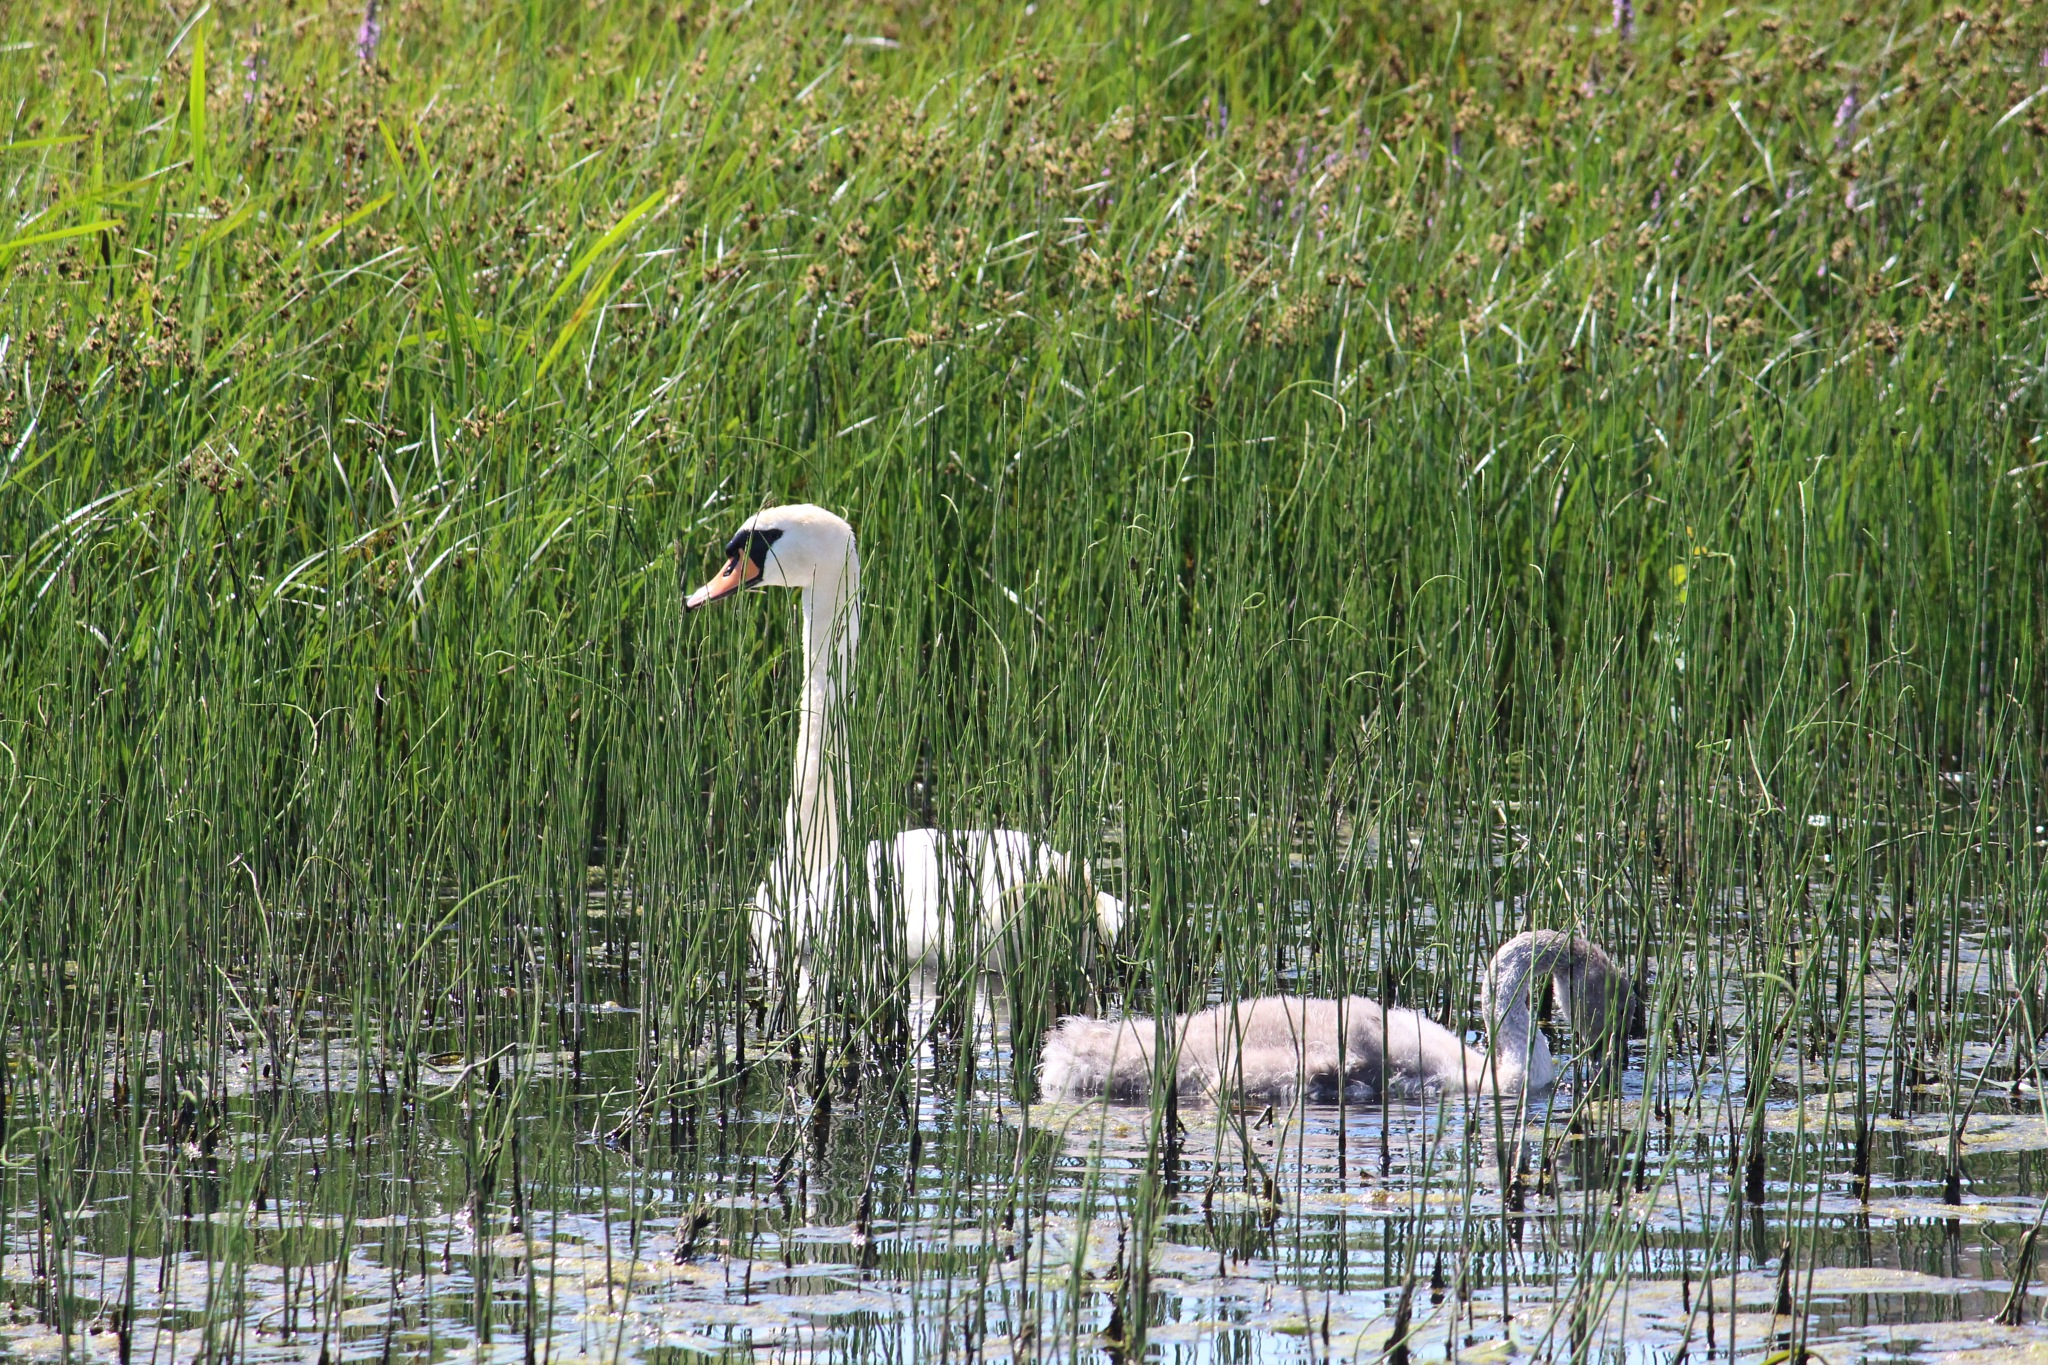 Swans in the reeds by FrankieS